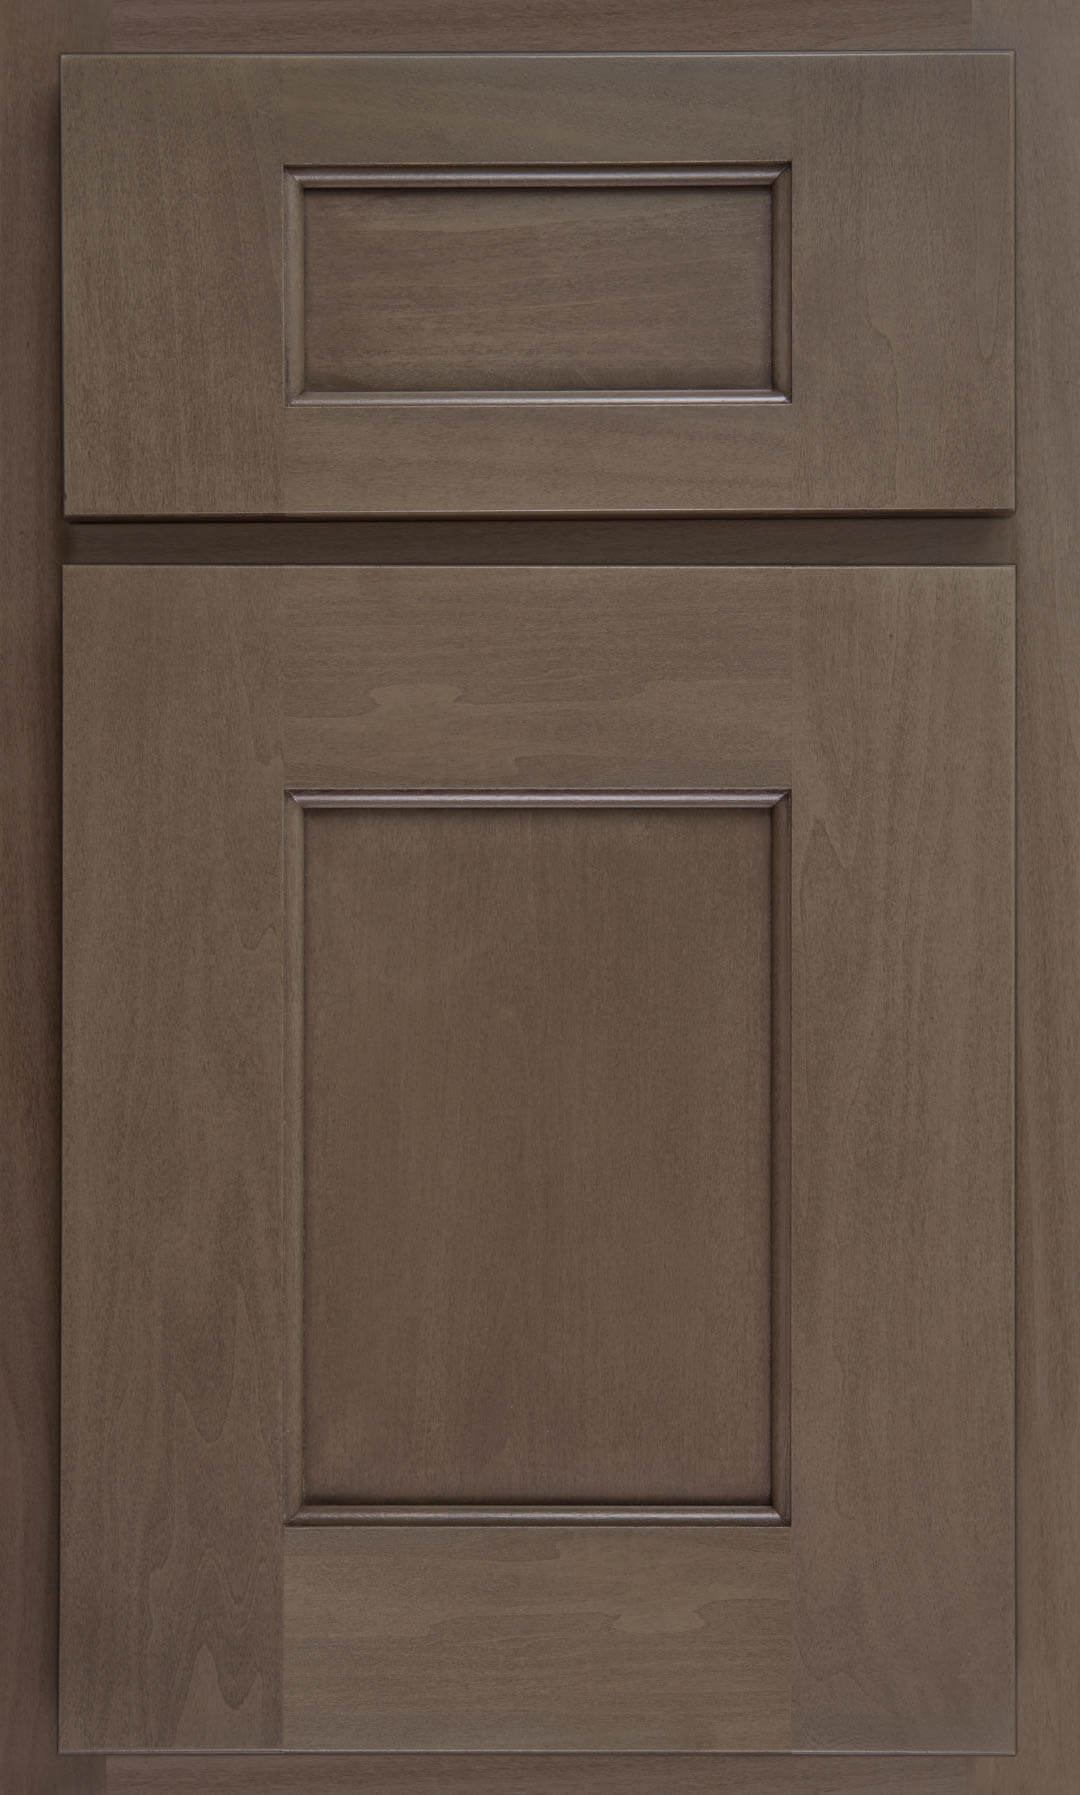 Aspect Series Cabinet Genies Kitchen And Bathroom Remodeling Cape Coral Fl